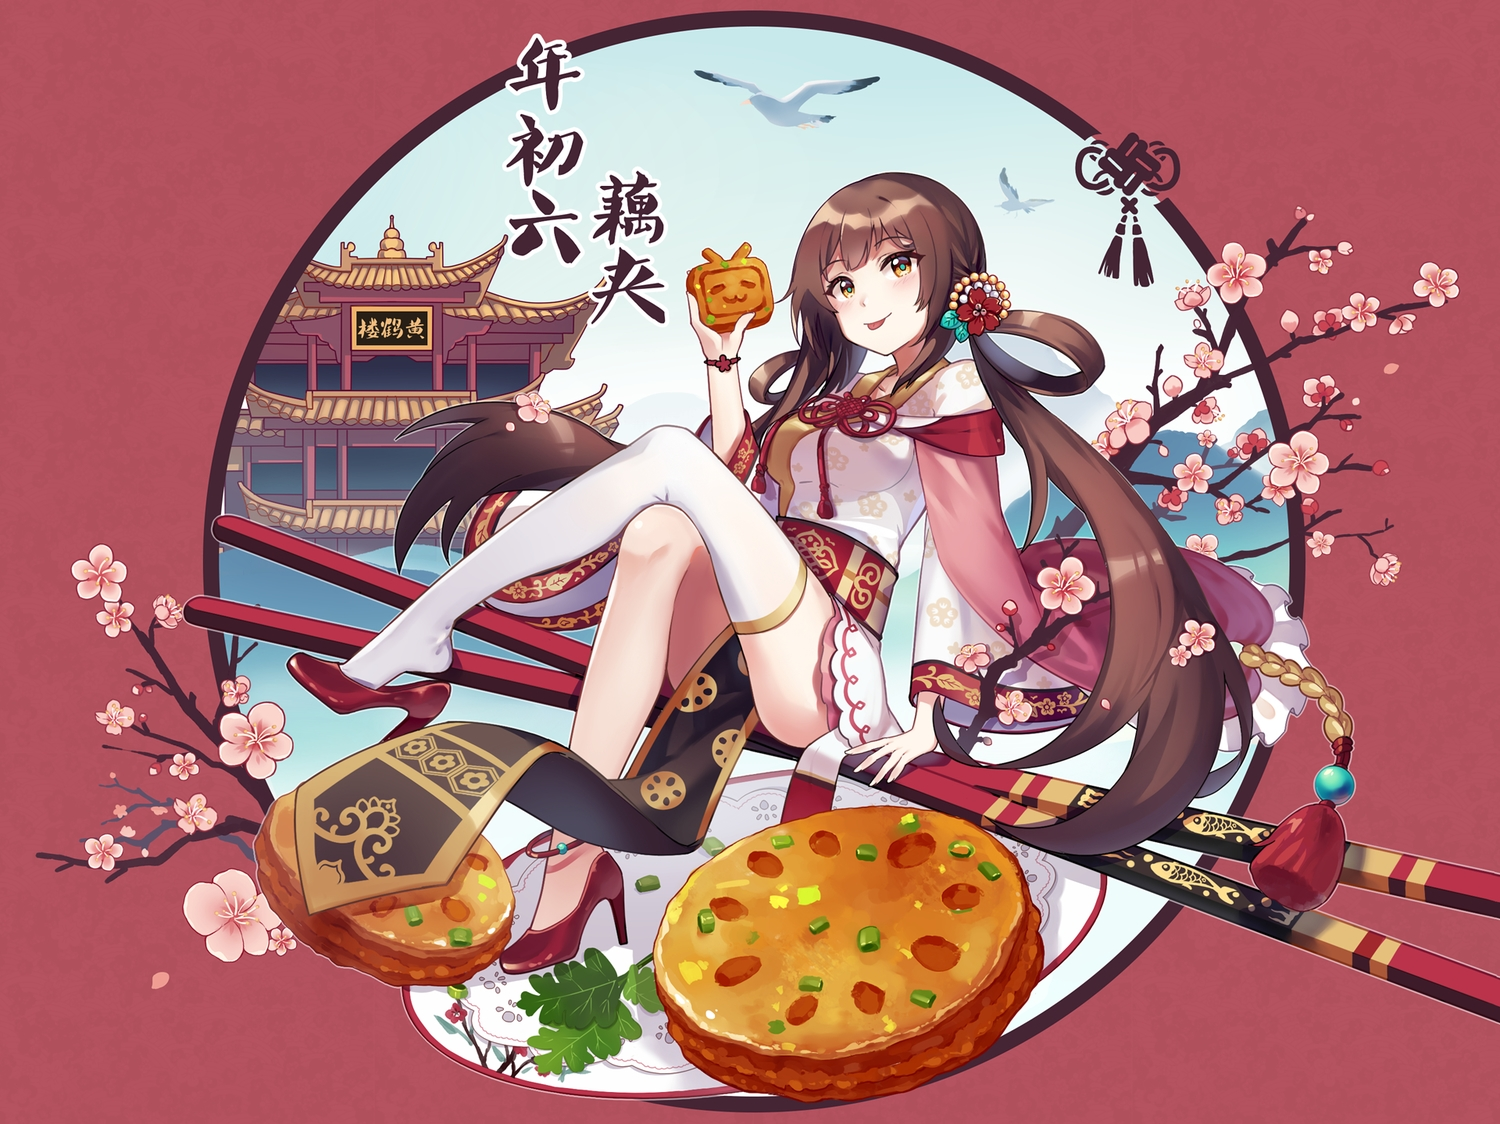 animal bili_bili_douga bird brown_hair building cherry_blossoms chinese_clothes food long_hair pink sharlorc sky thighhighs yellow_eyes